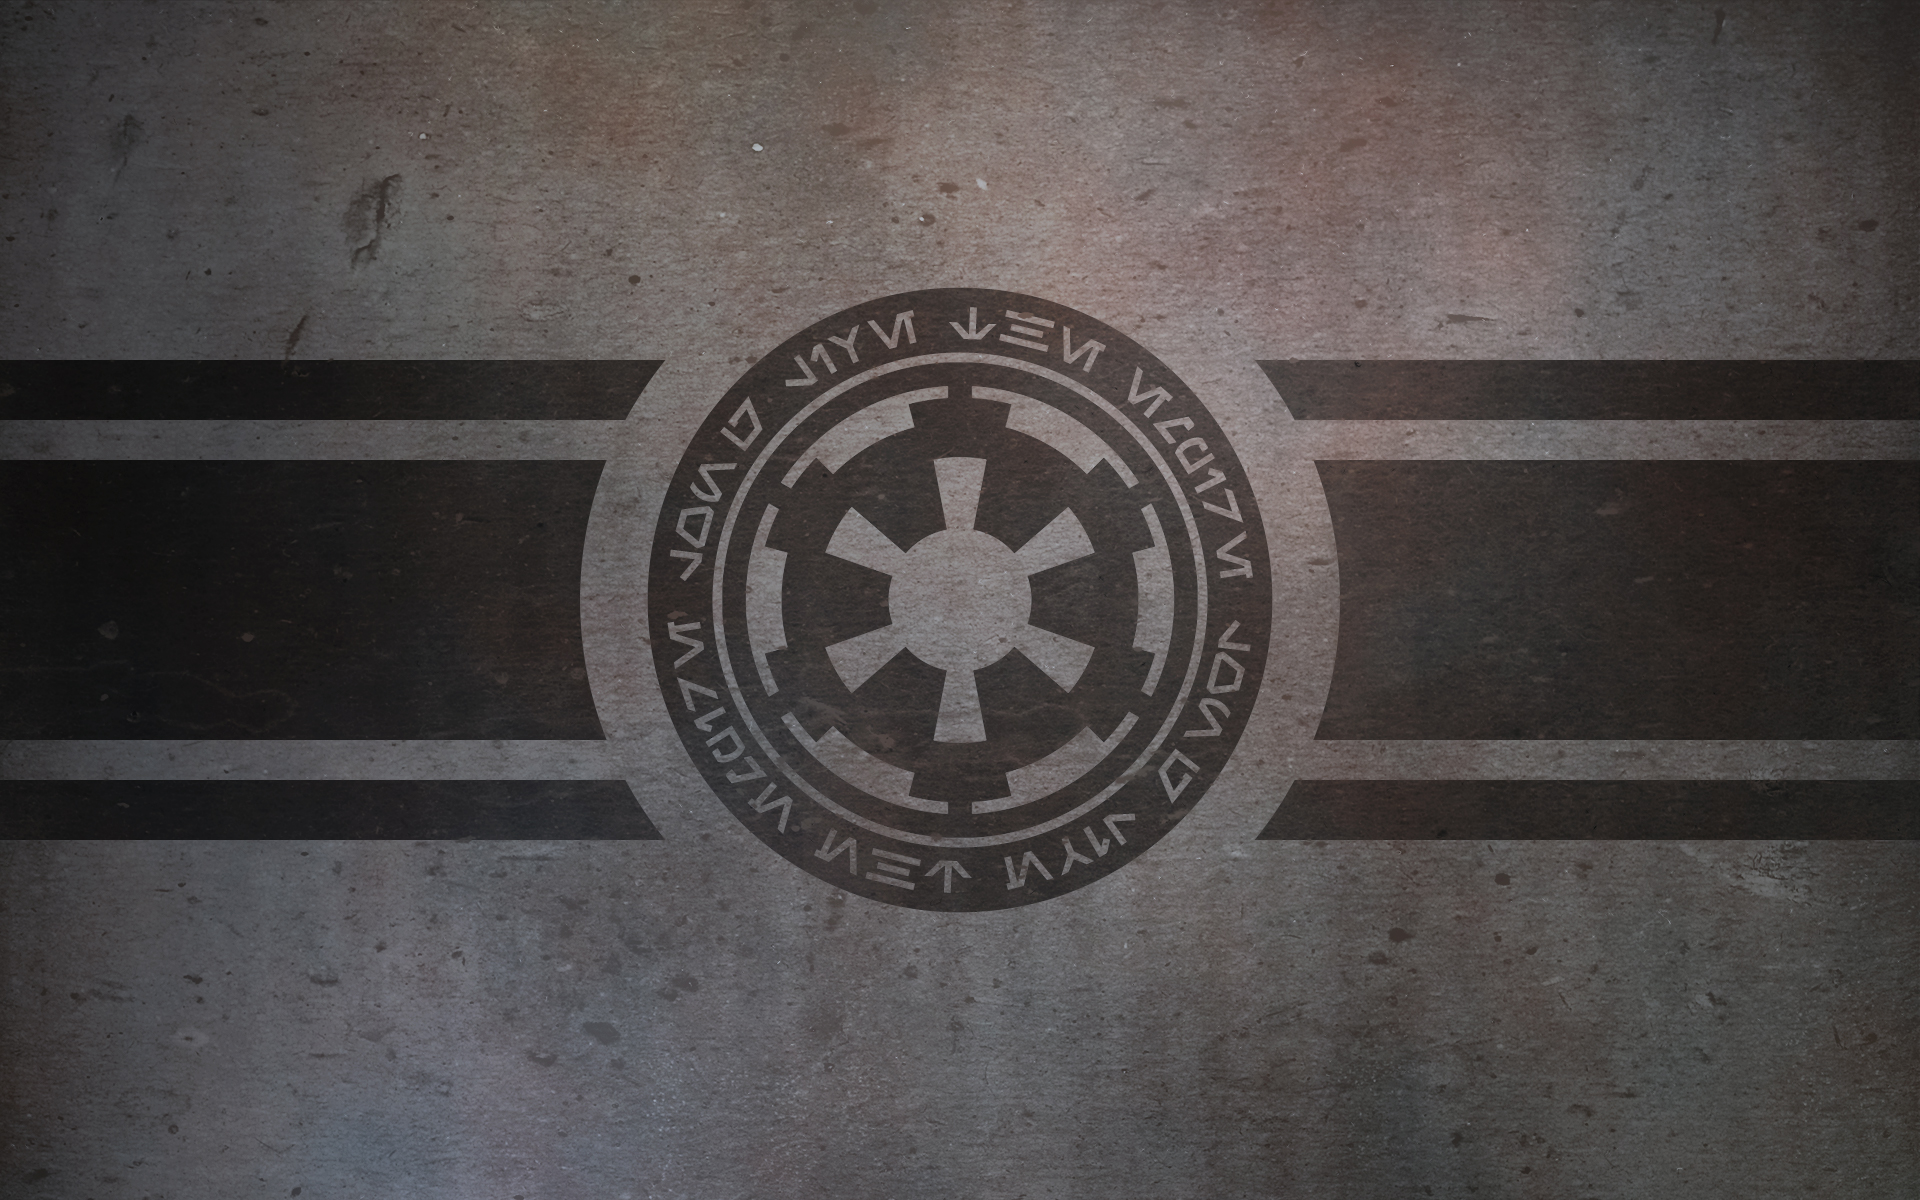 Star Wars Galactic Empire Wallpaper  WallpaperSafari